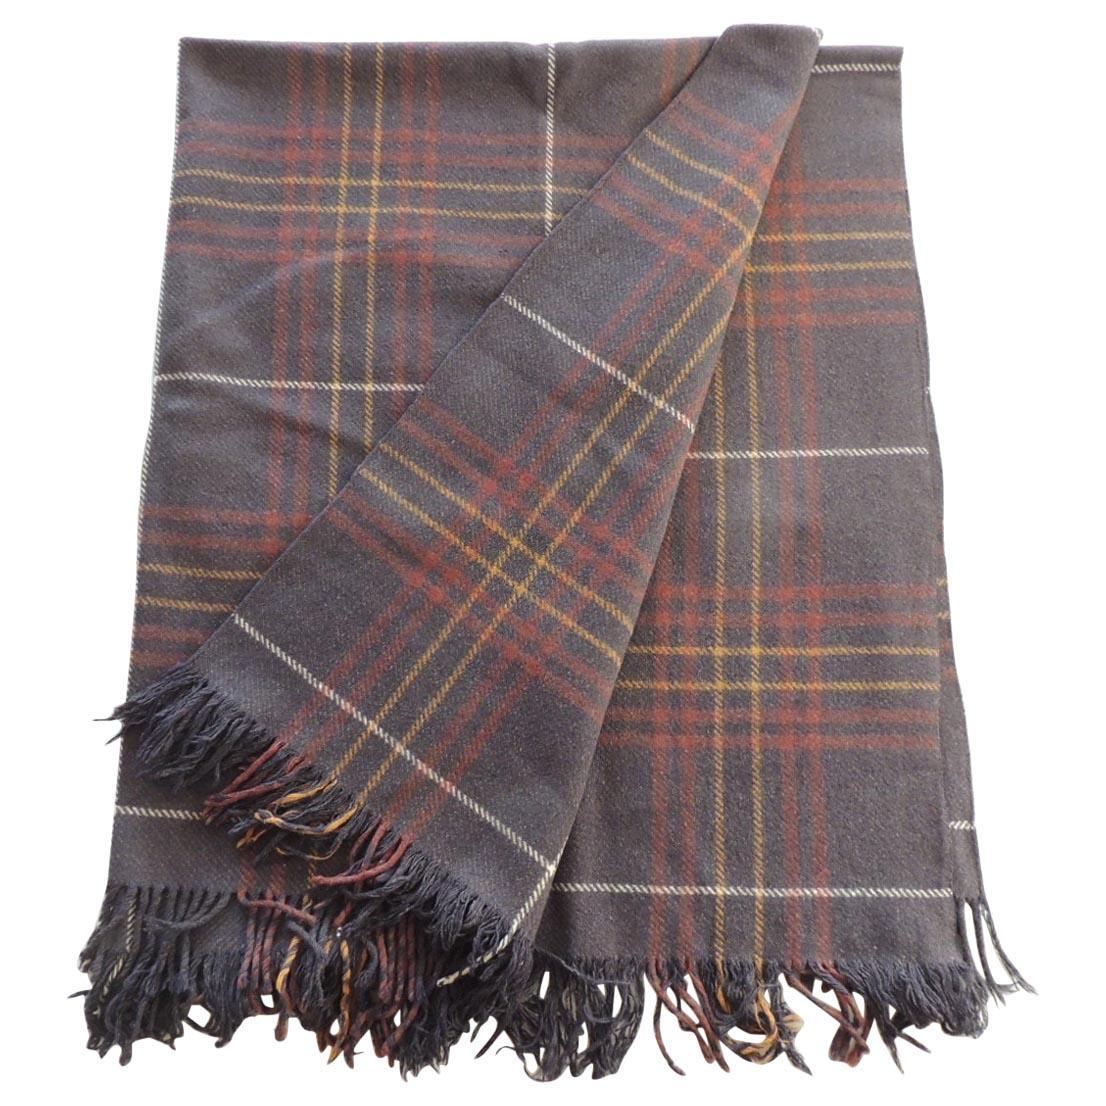 Vintage Brown and Red Plaid Wool Throw with Fringes